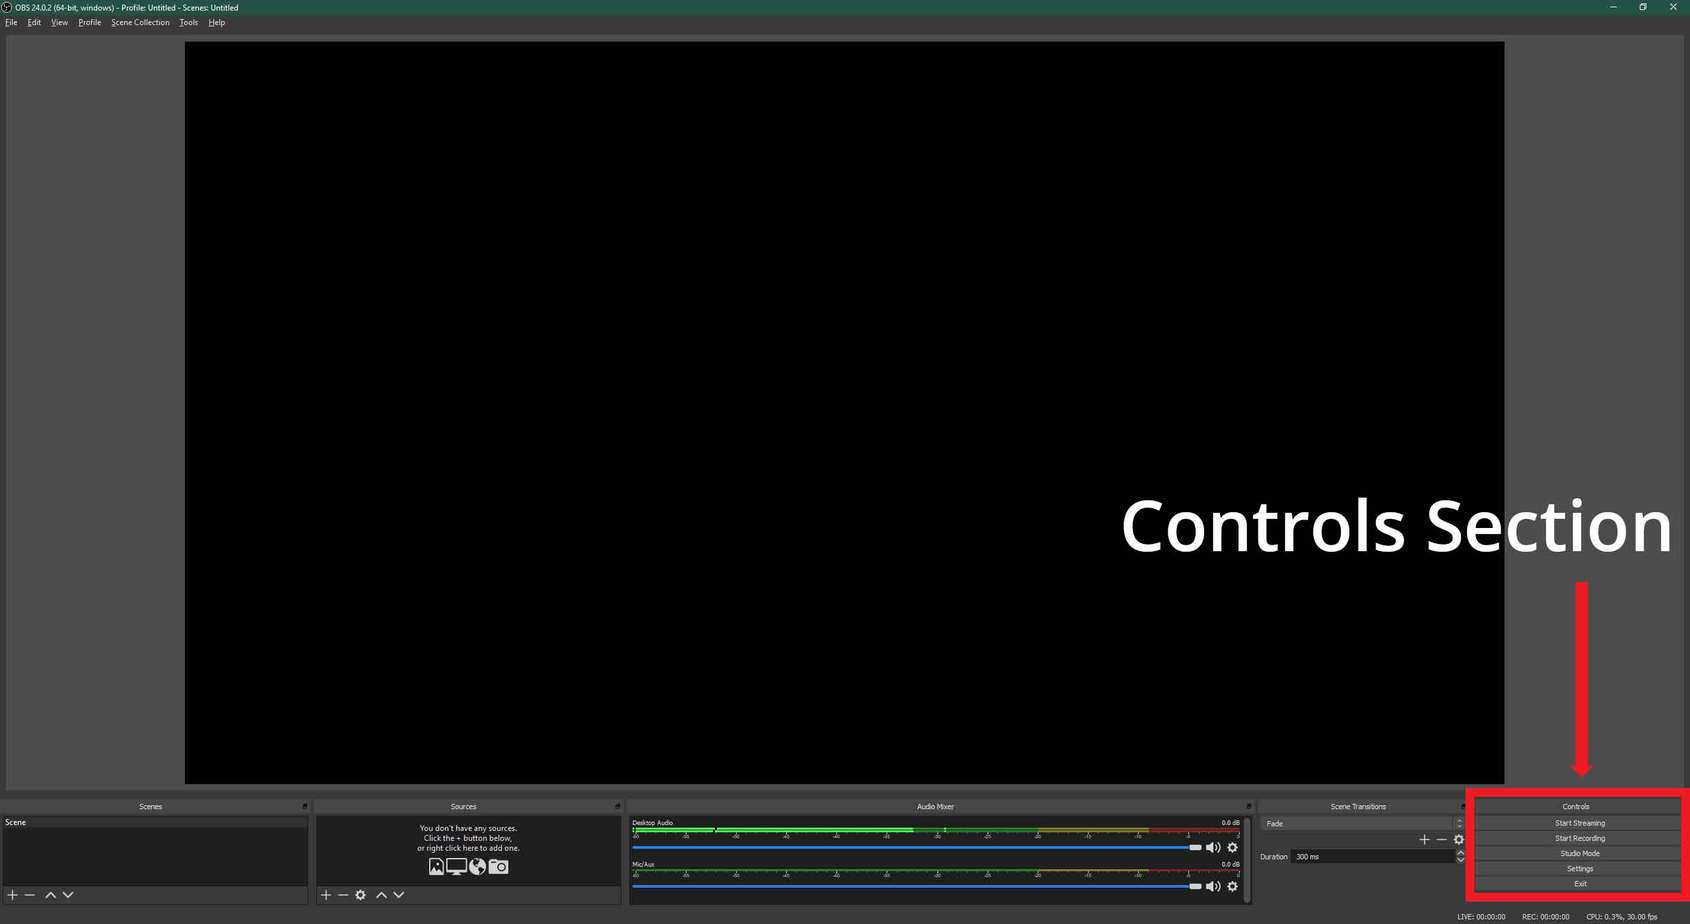 OBS Controls Section